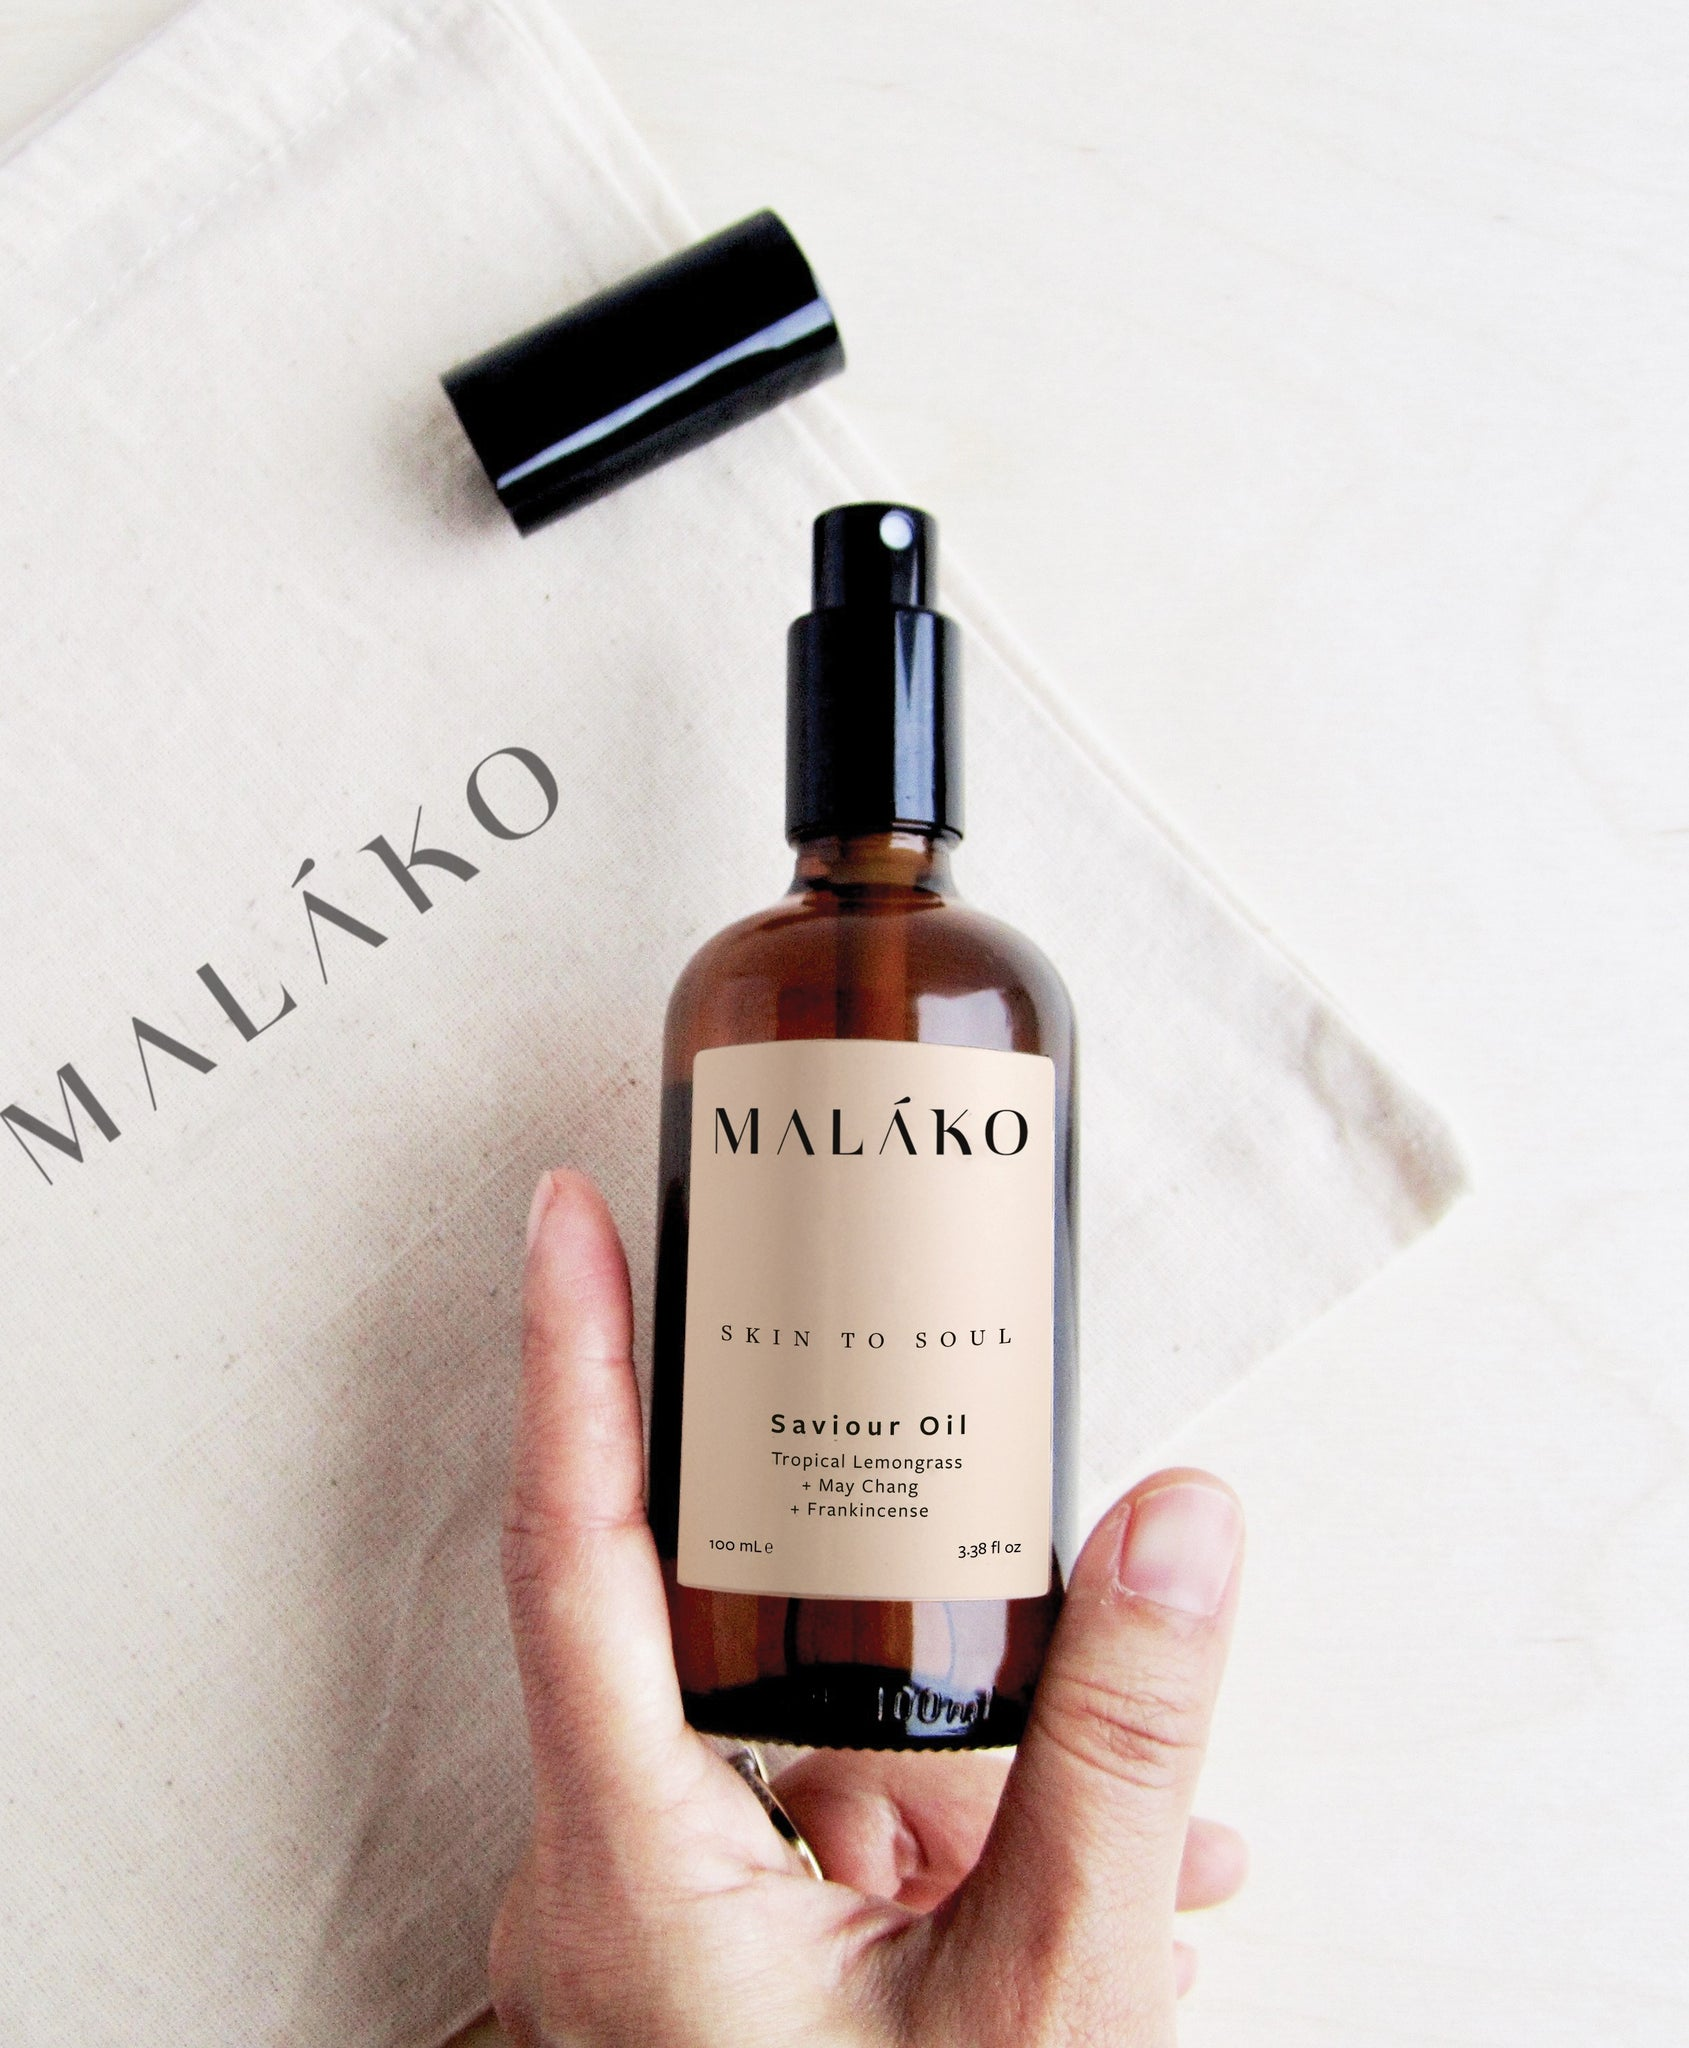 MALĀKO Skin to Soul Saviour Oil, 100ml